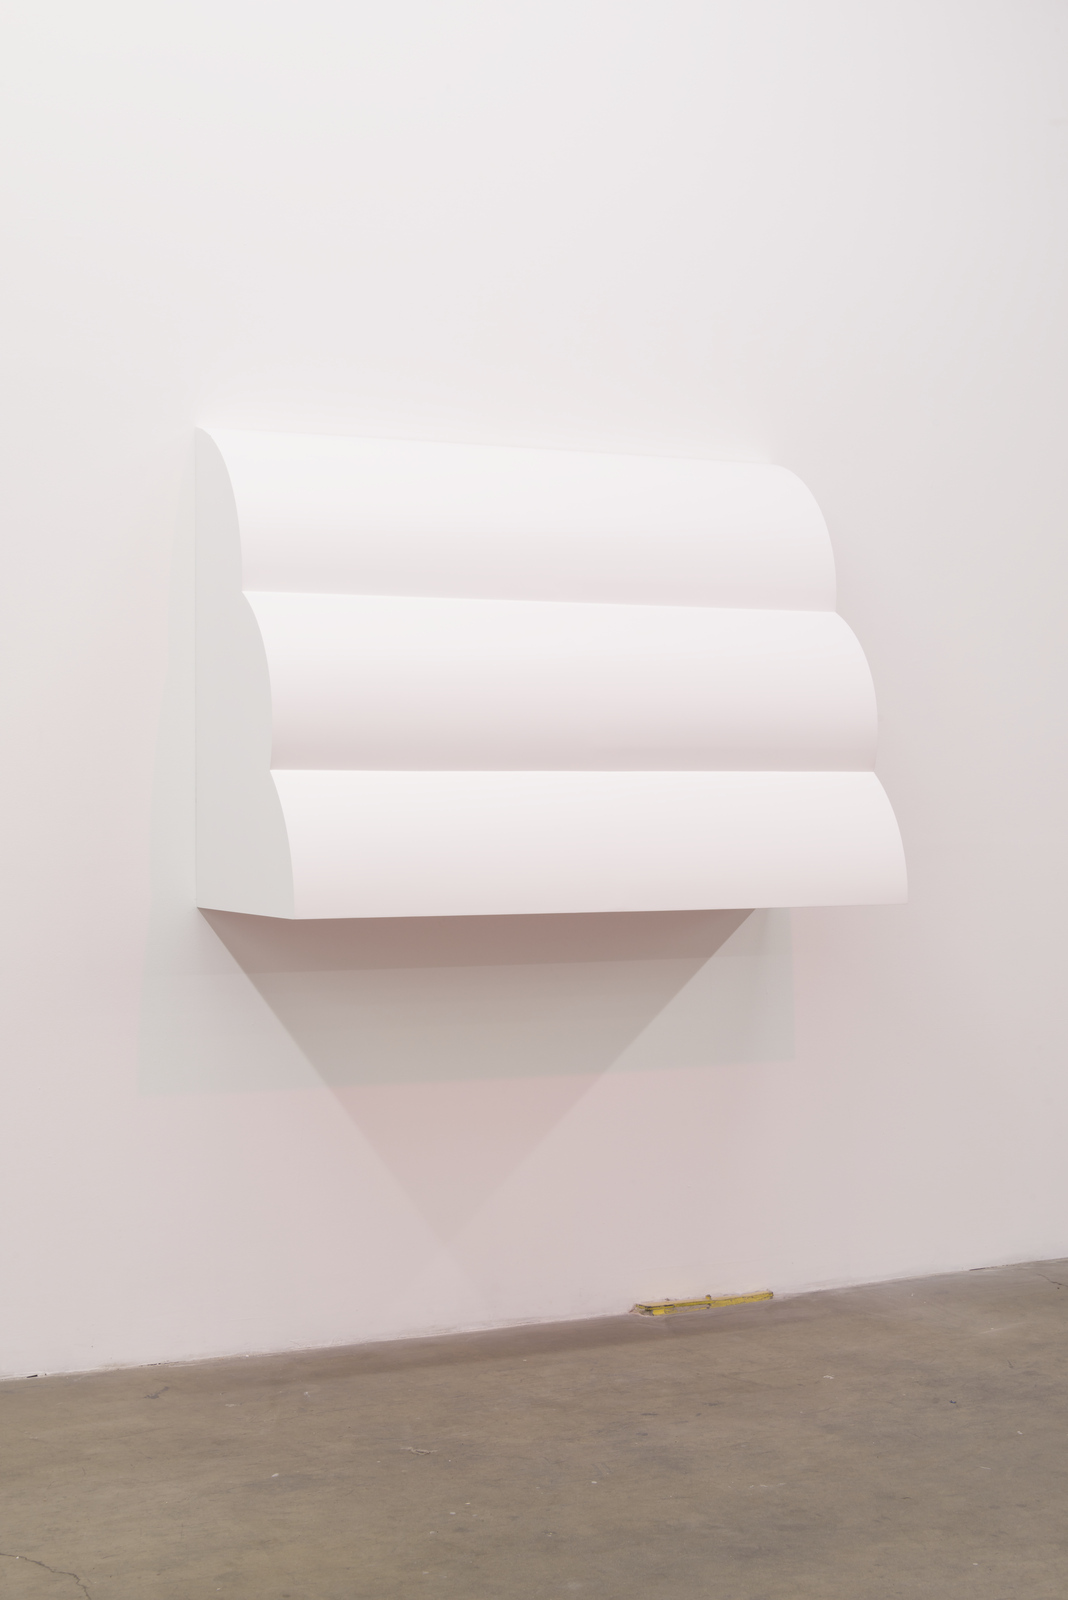 7b_Balula, Variable Shade, Cloud Awning, 2016